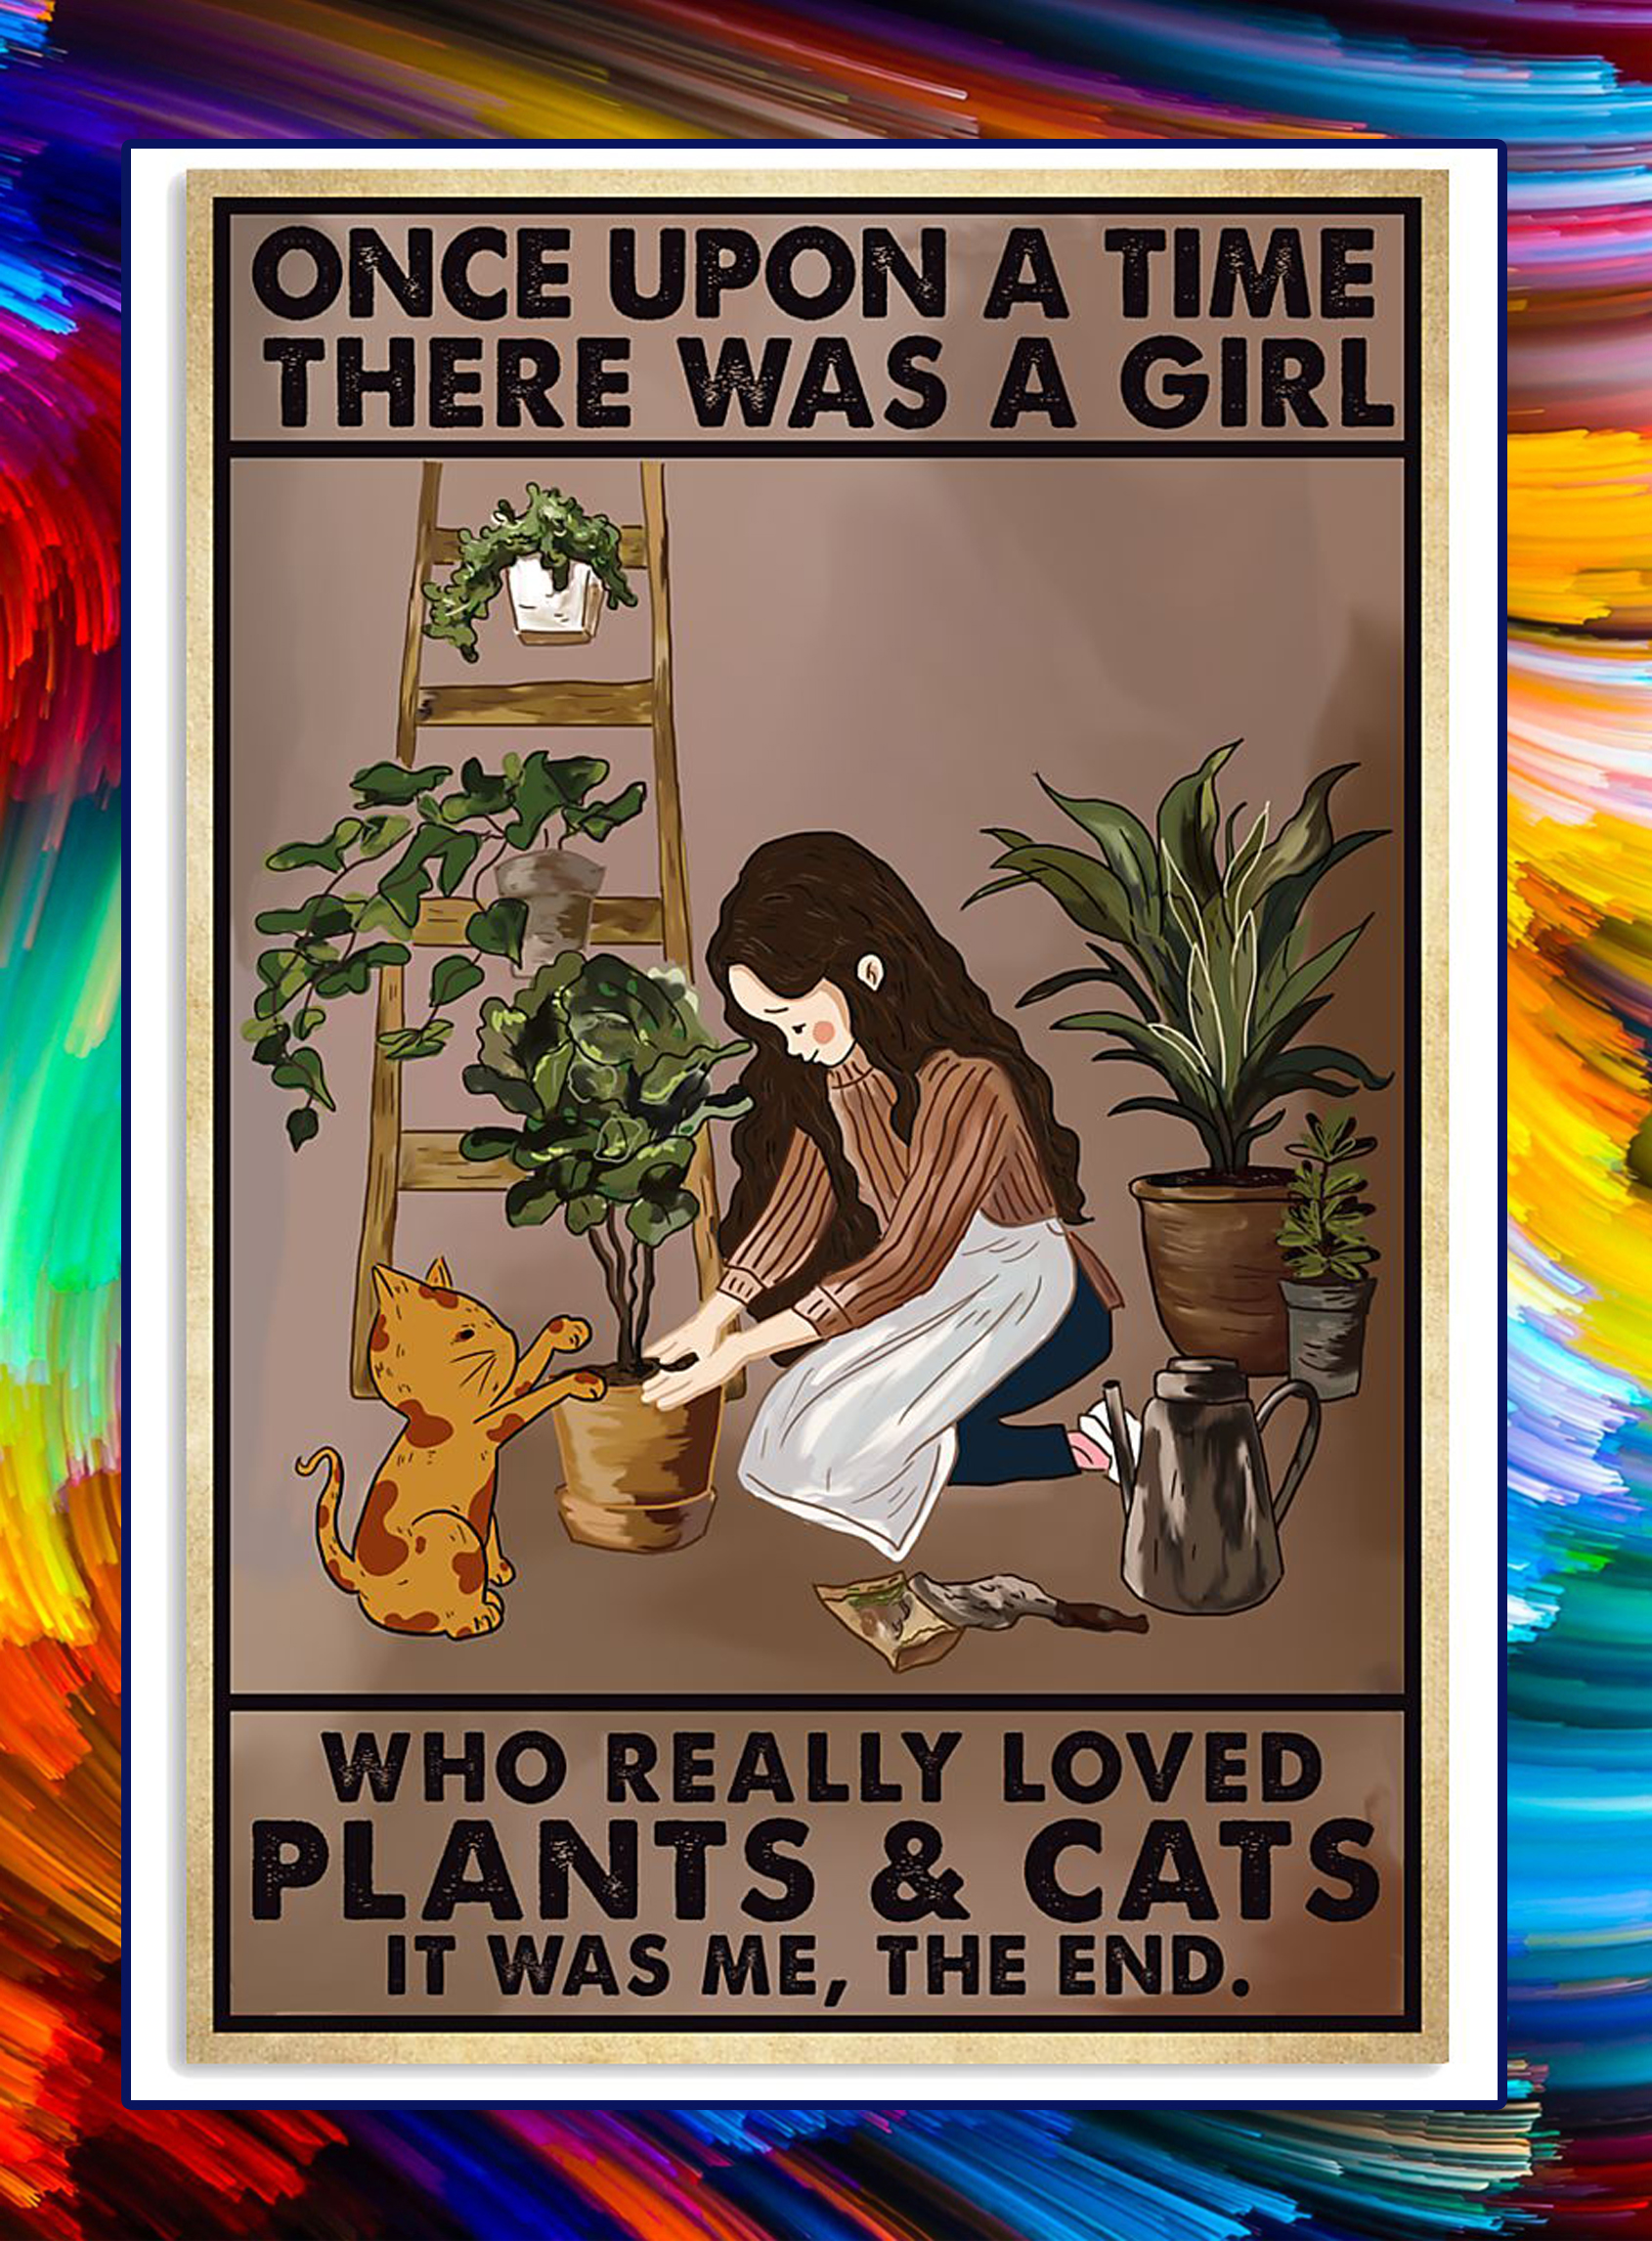 Once upon a time there was a girl who really loved plants and cats poster